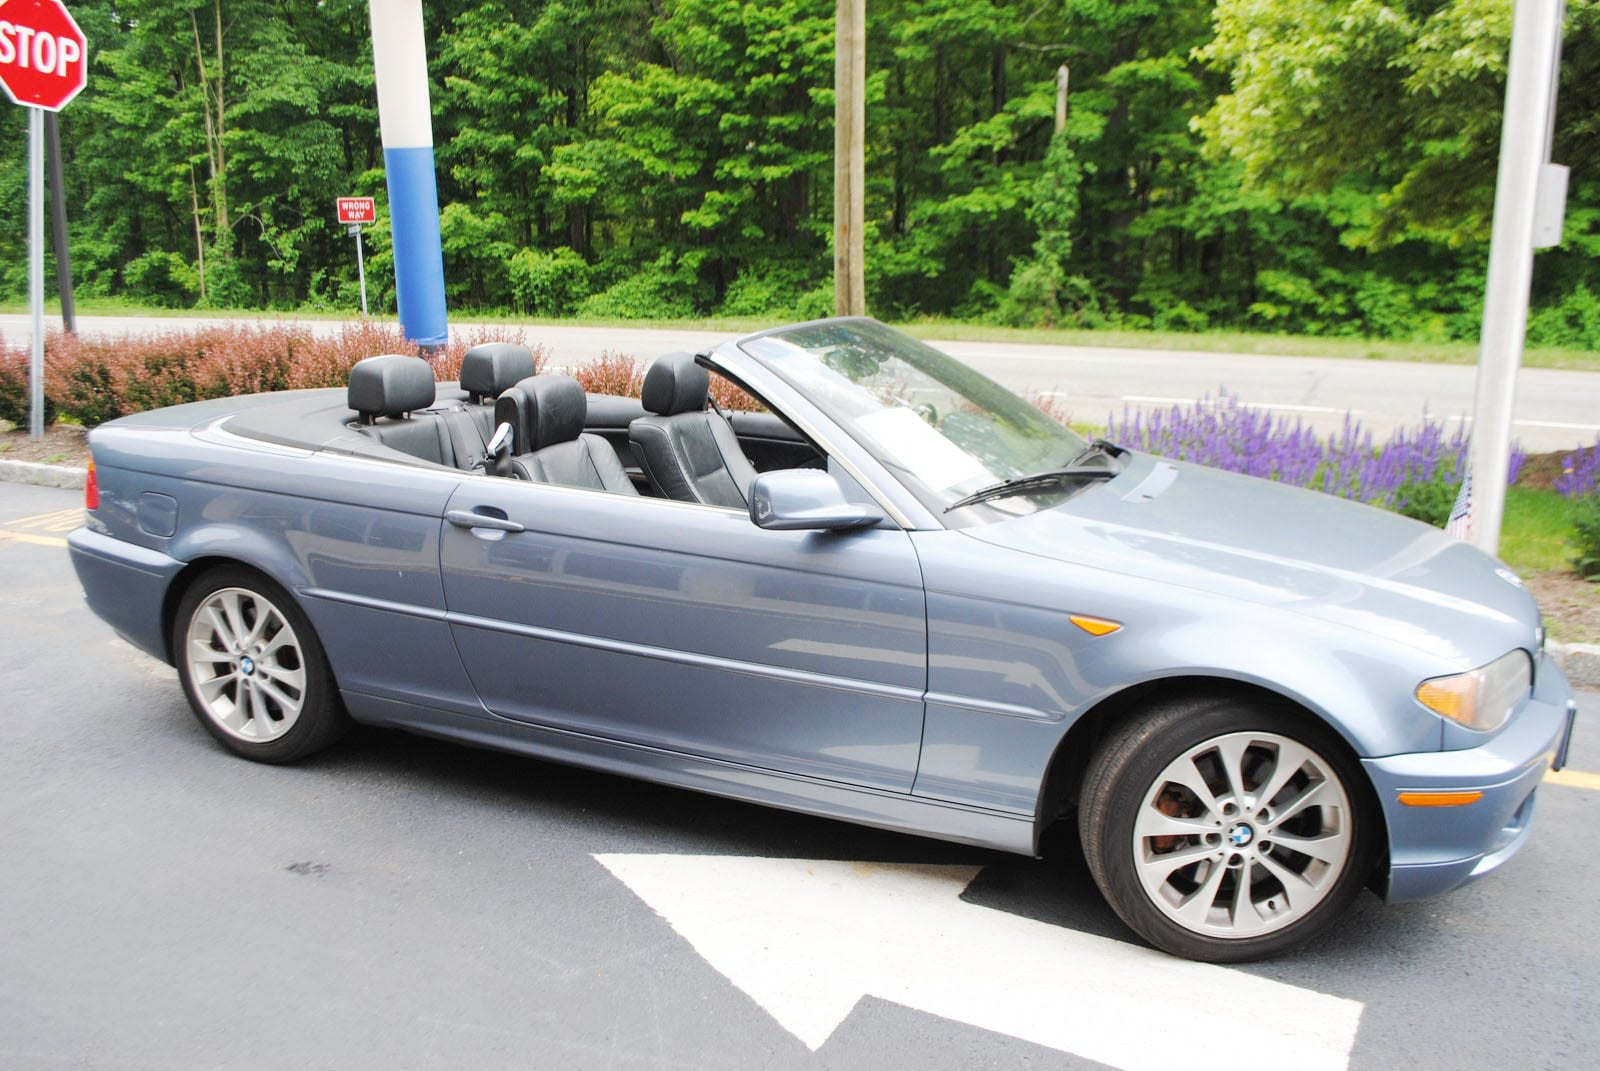 used bmw cars and suvs for sale ramsey nj autos post. Black Bedroom Furniture Sets. Home Design Ideas